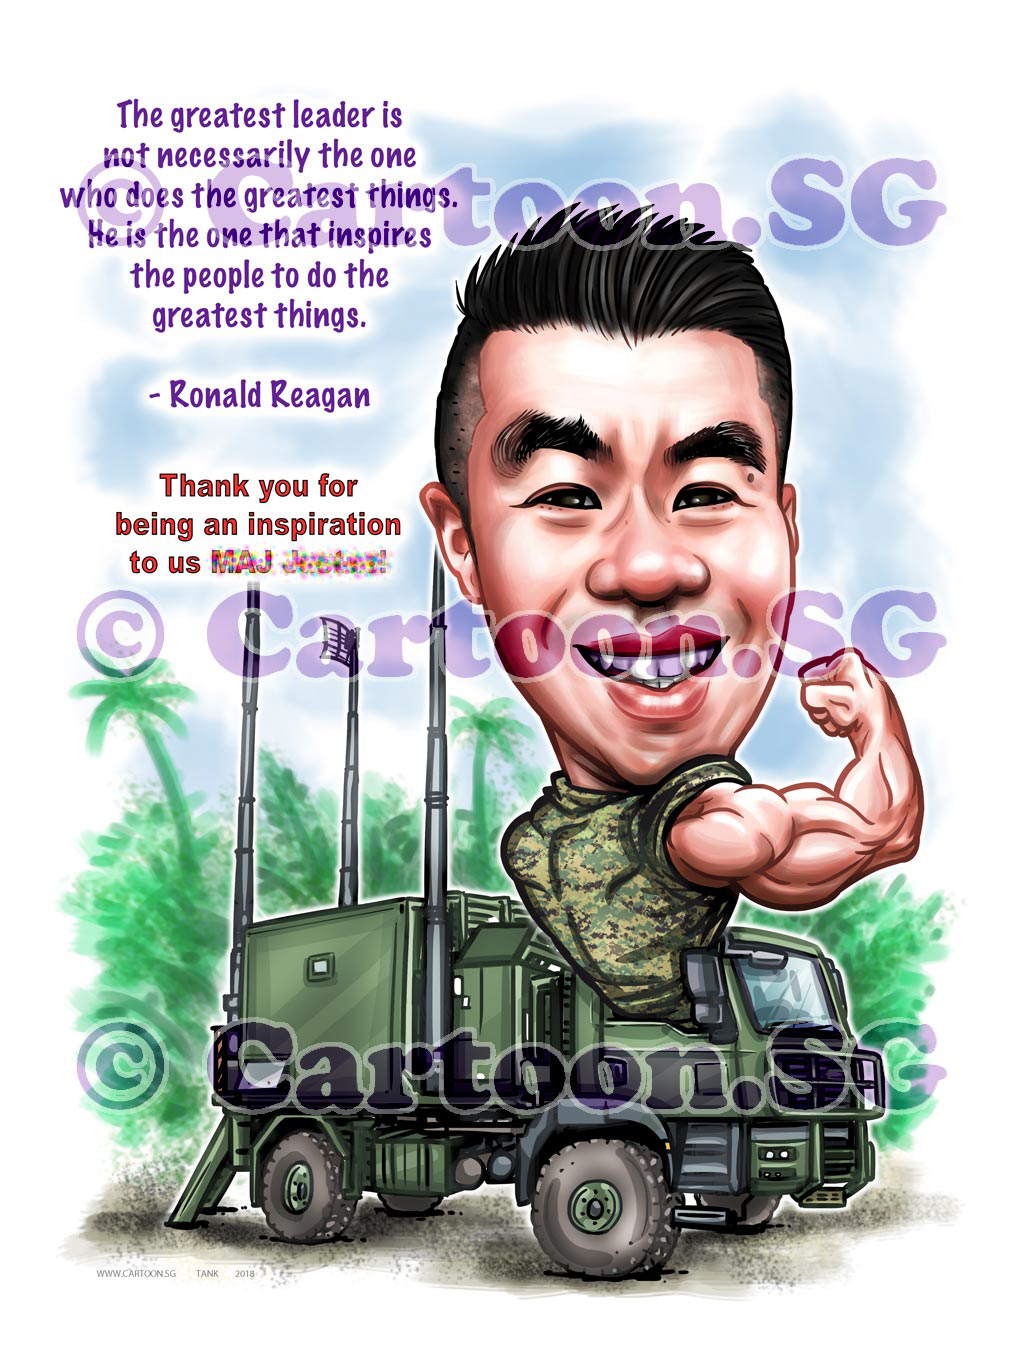 2018-01-30-Caricature-Singapore-digital-boss-gift-army-vehicle-uniform-saf-flex-muscle.jpg